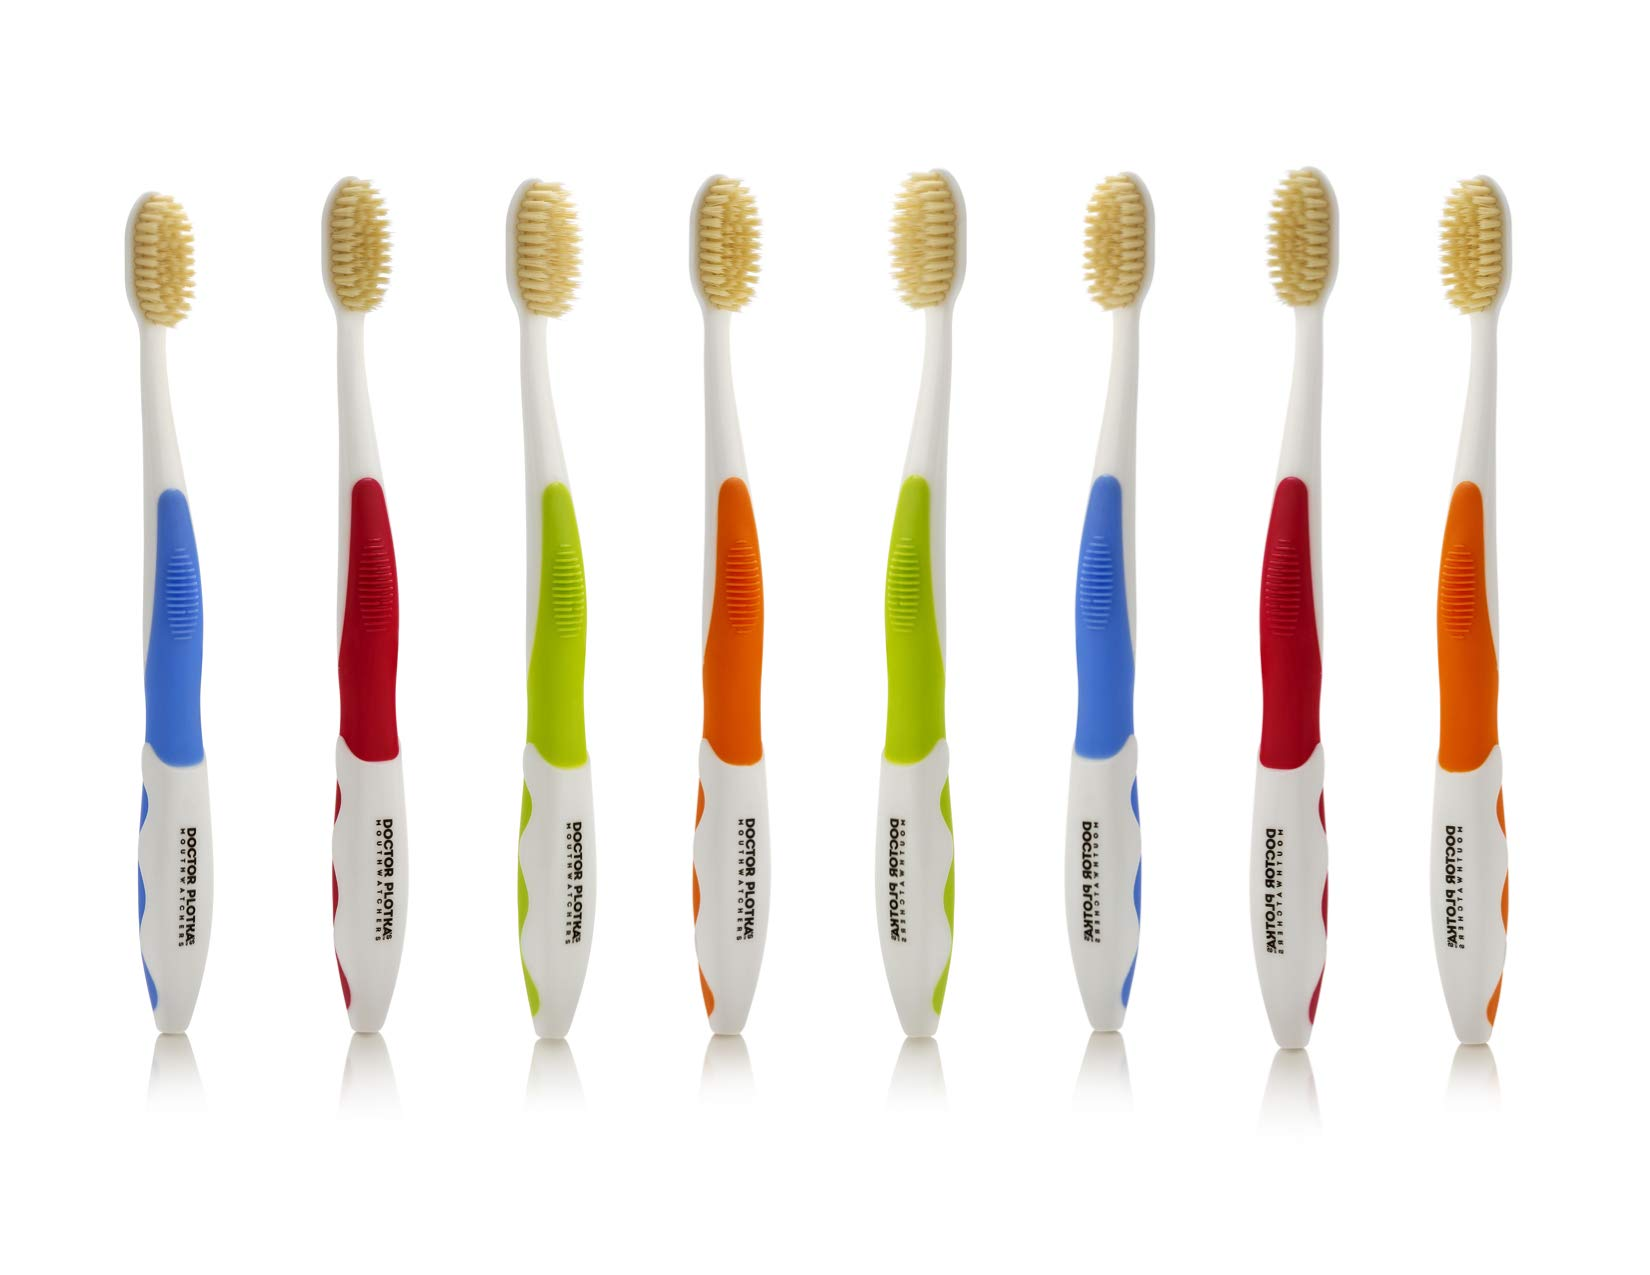 Doctor Plotka's Mouthwatchers Antimicrobial Floss Bristle Silver Toothbrush, Adult, 8 Pack